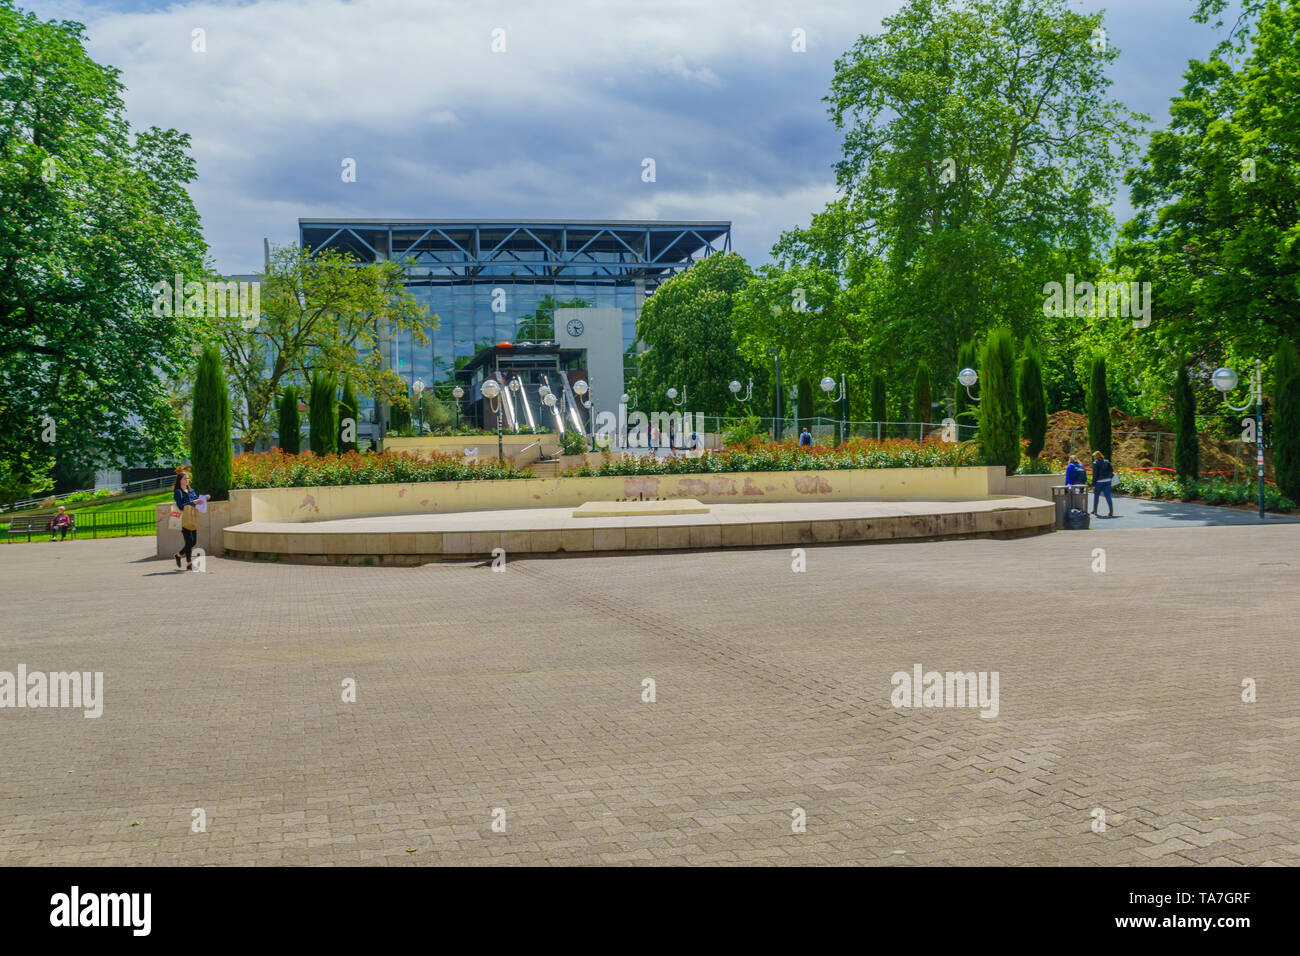 Lyon, France - May 10, 2019: View of the Perrache station, with locals and visitors, in Lyon, France - Stock Image